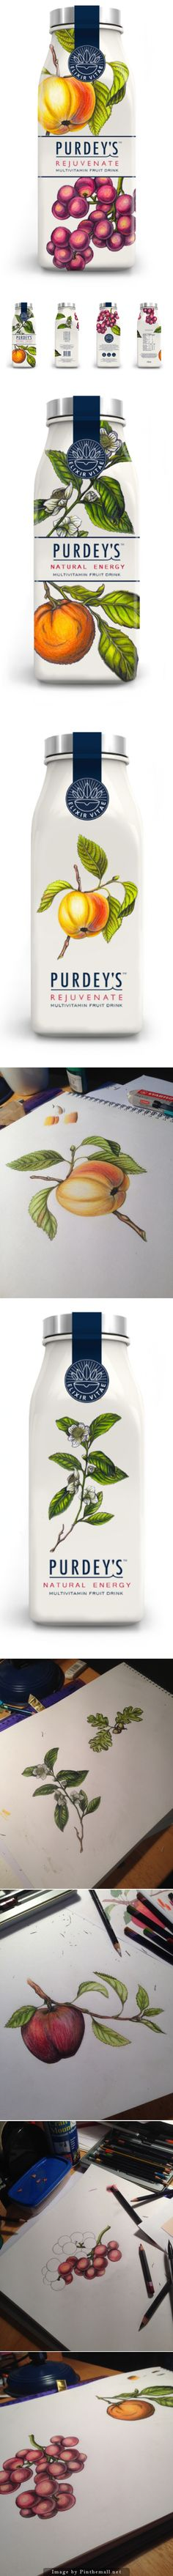 Purdey's (Concept) by Caitlin Walsh using actual fruit on bottle were keen to explore Fruit Packaging, Beverage Packaging, Bottle Packaging, Pretty Packaging, Brand Packaging, Design Packaging, Label Design, Package Design, Graphic Design